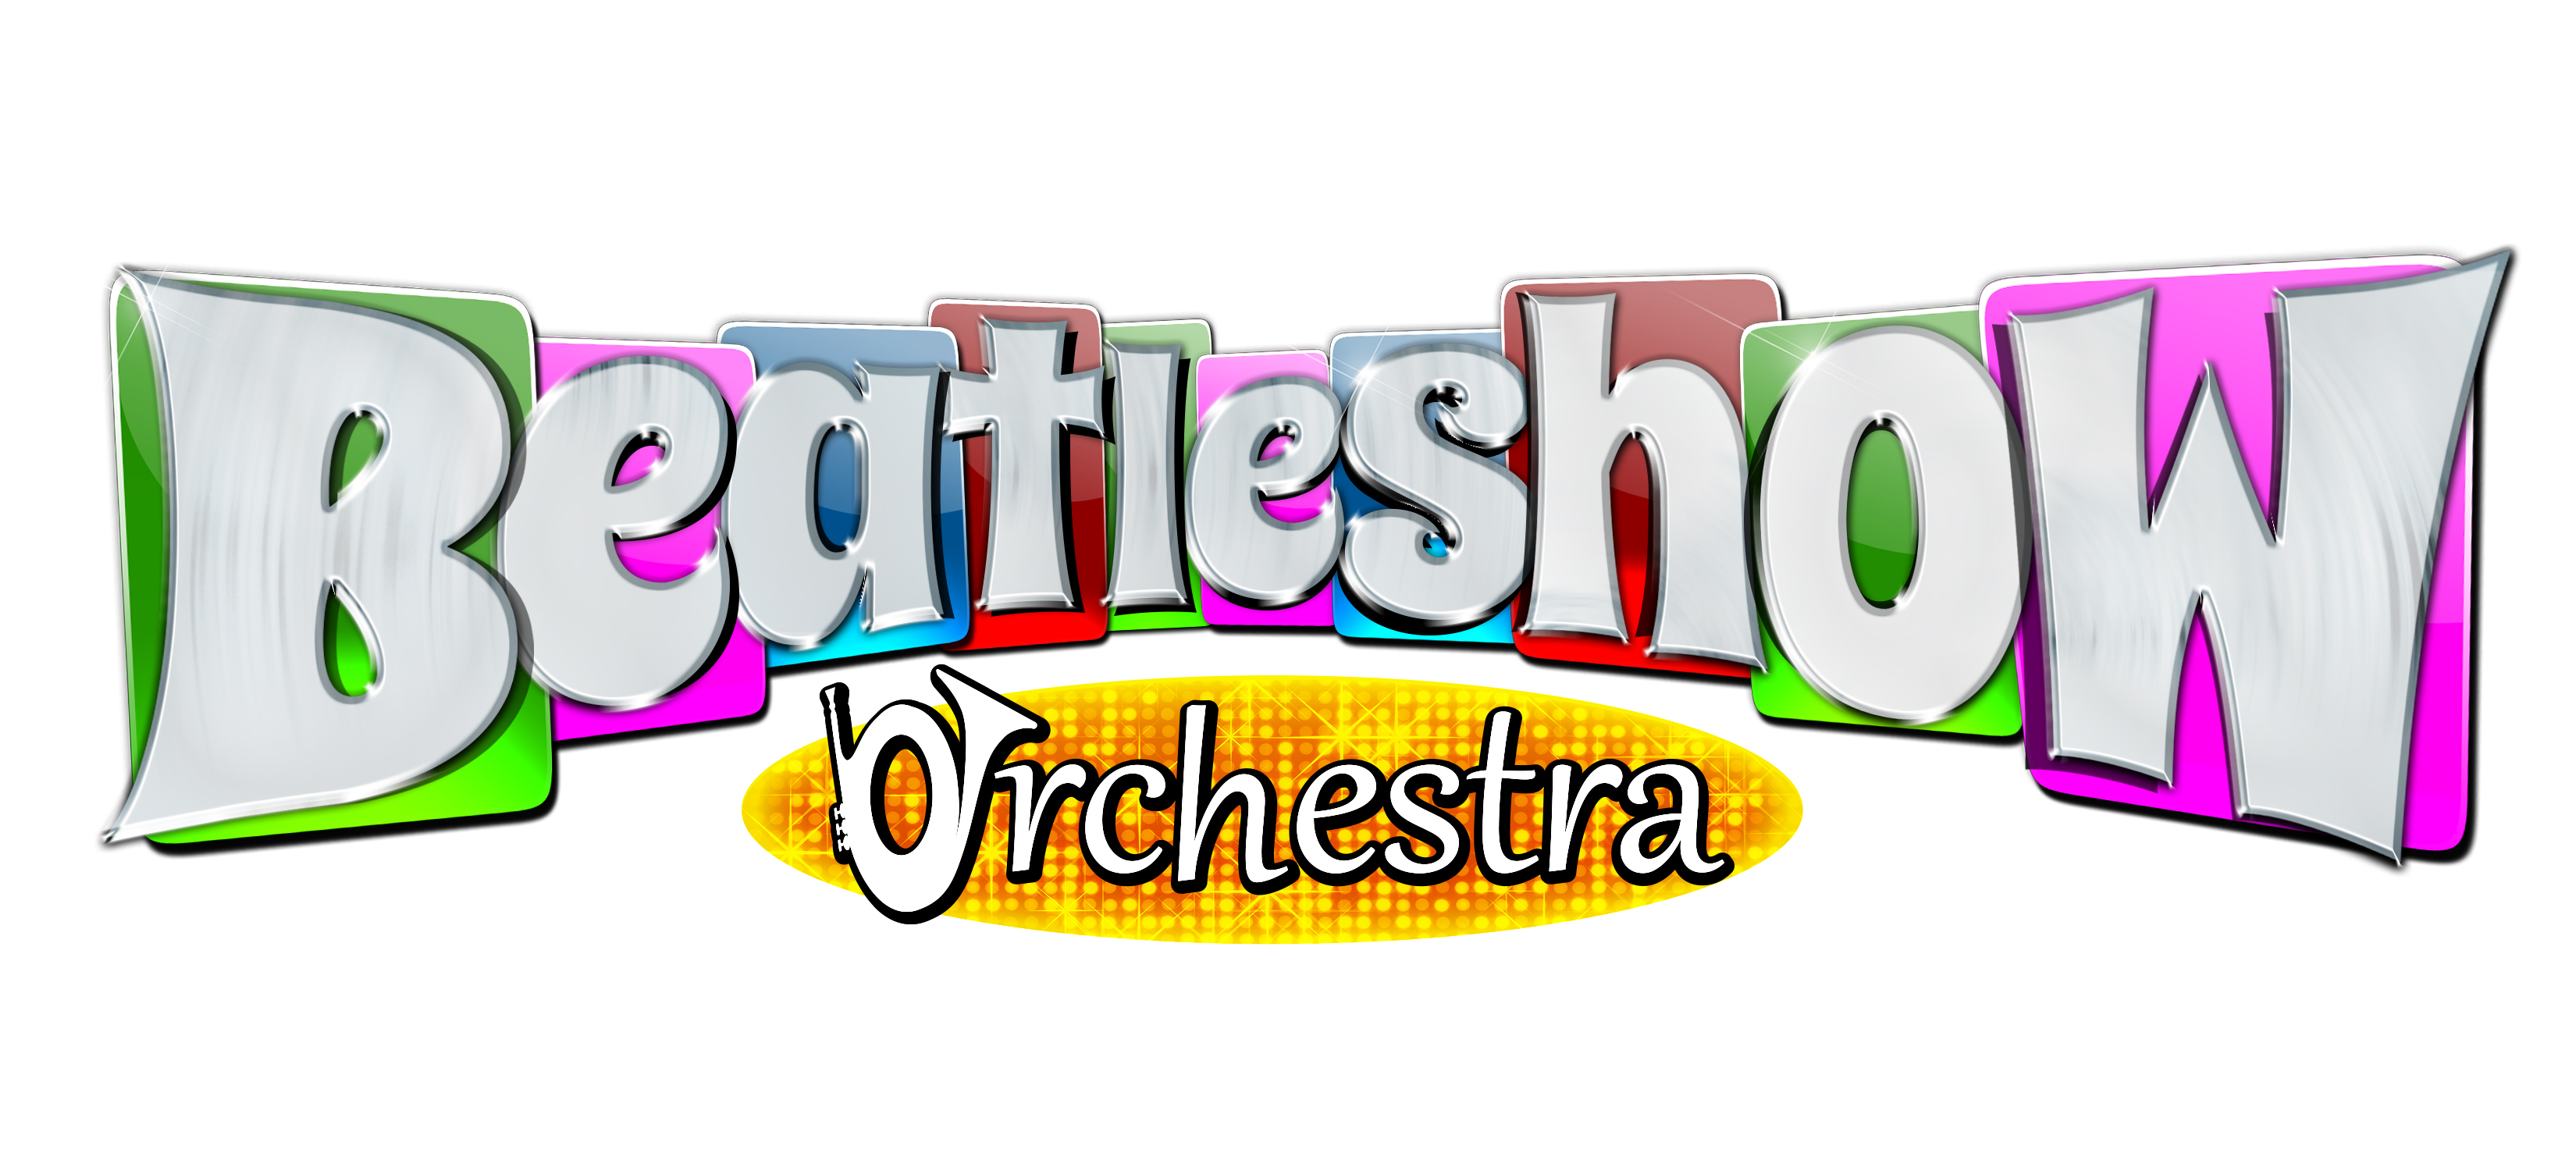 Beatleshow - The Best Beatles Tribute Band in the World